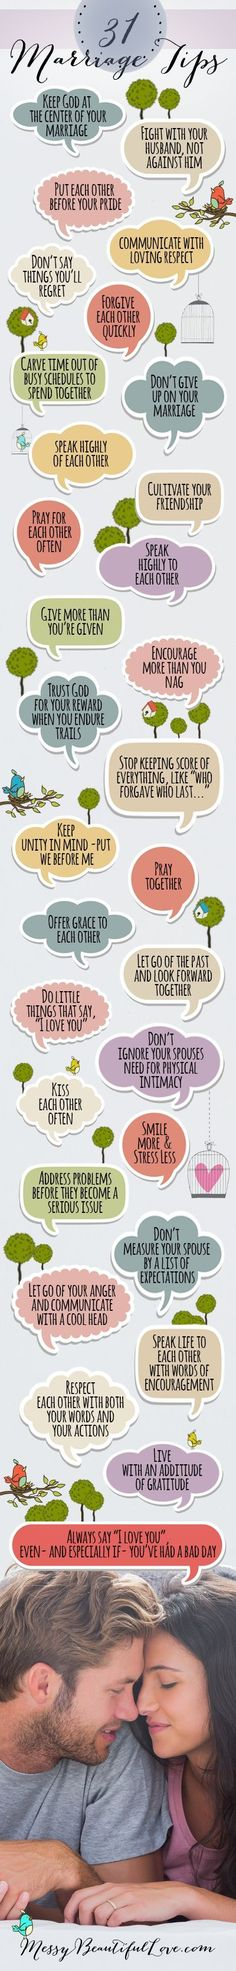 31 Marriage Tips! Maybe I can print out & put in a jar & we read one every day!